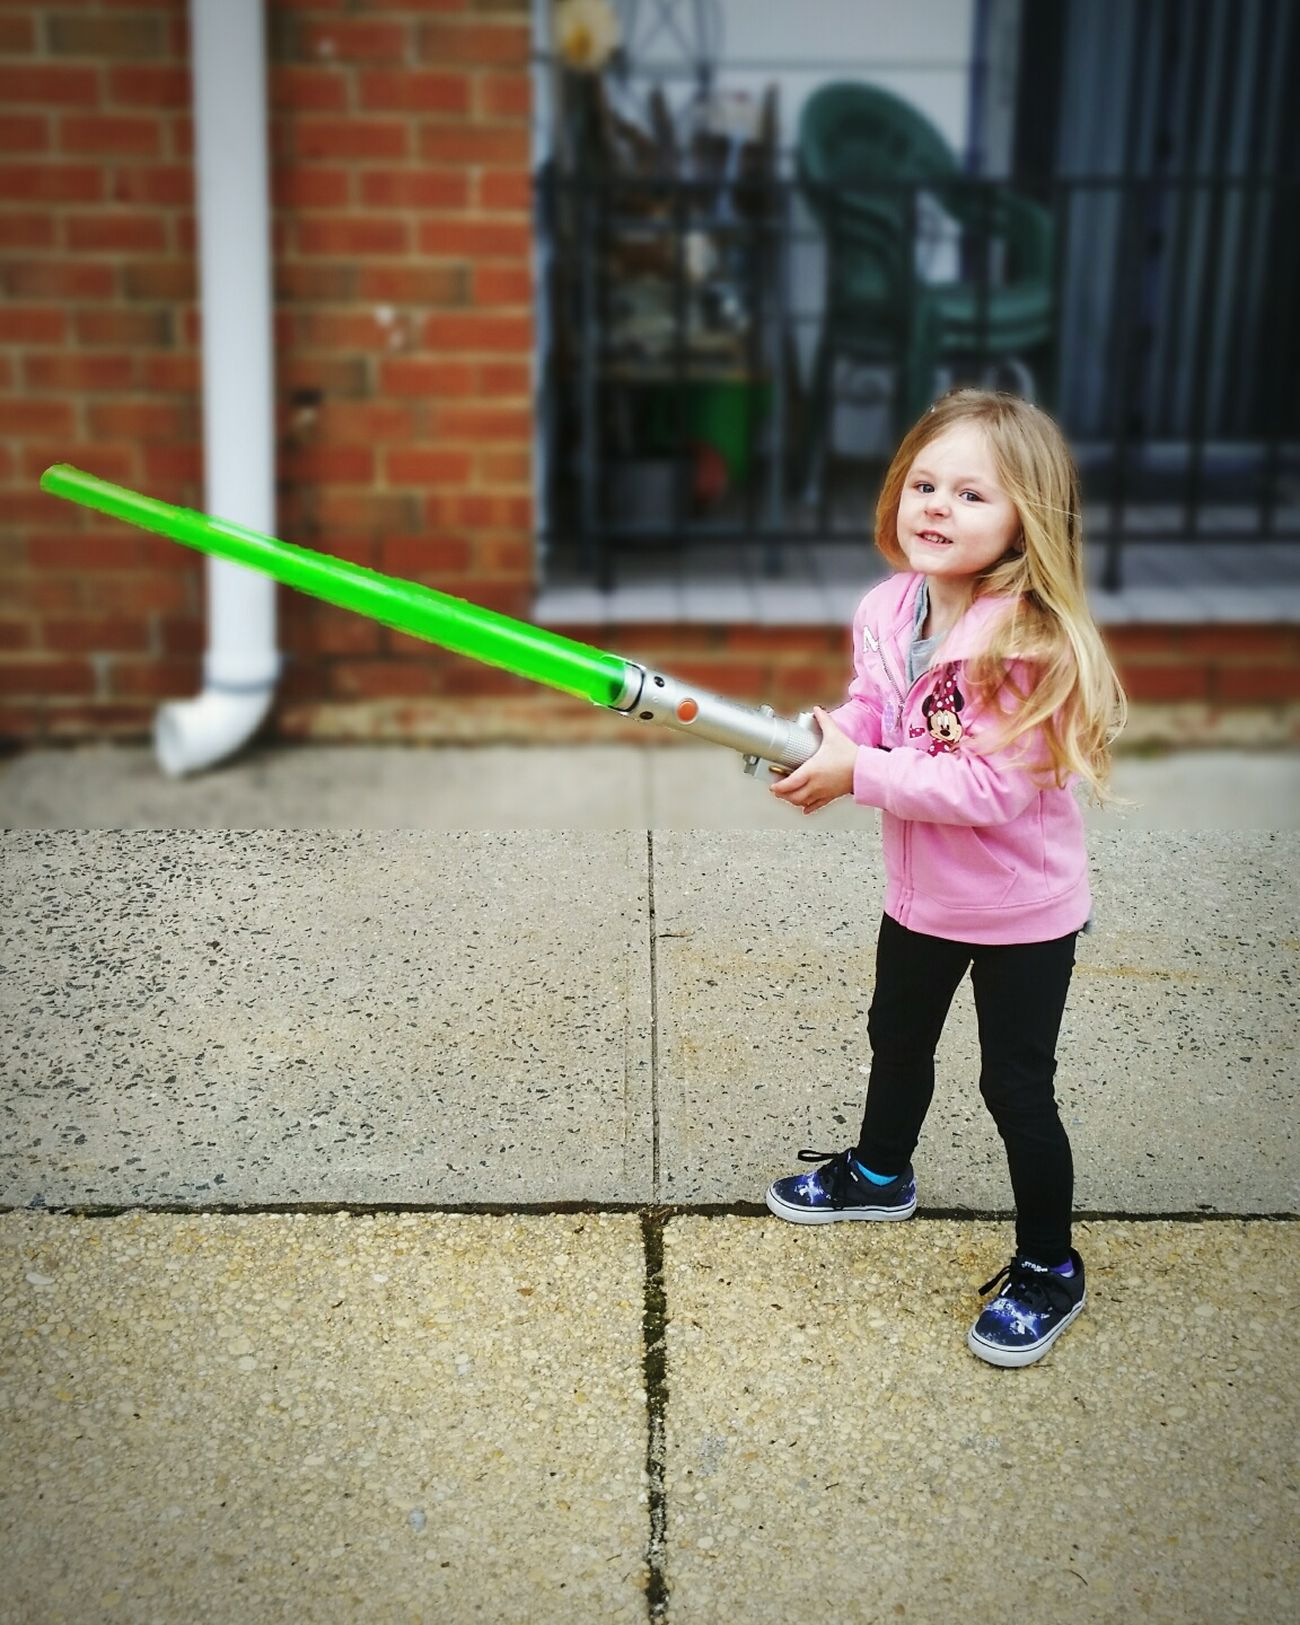 """Truly wonderful the mind of a child is."" -yoda Edit Tadaa Community Taking Photos Children Portrait Padawan Star Wars Fun Lightsaber"